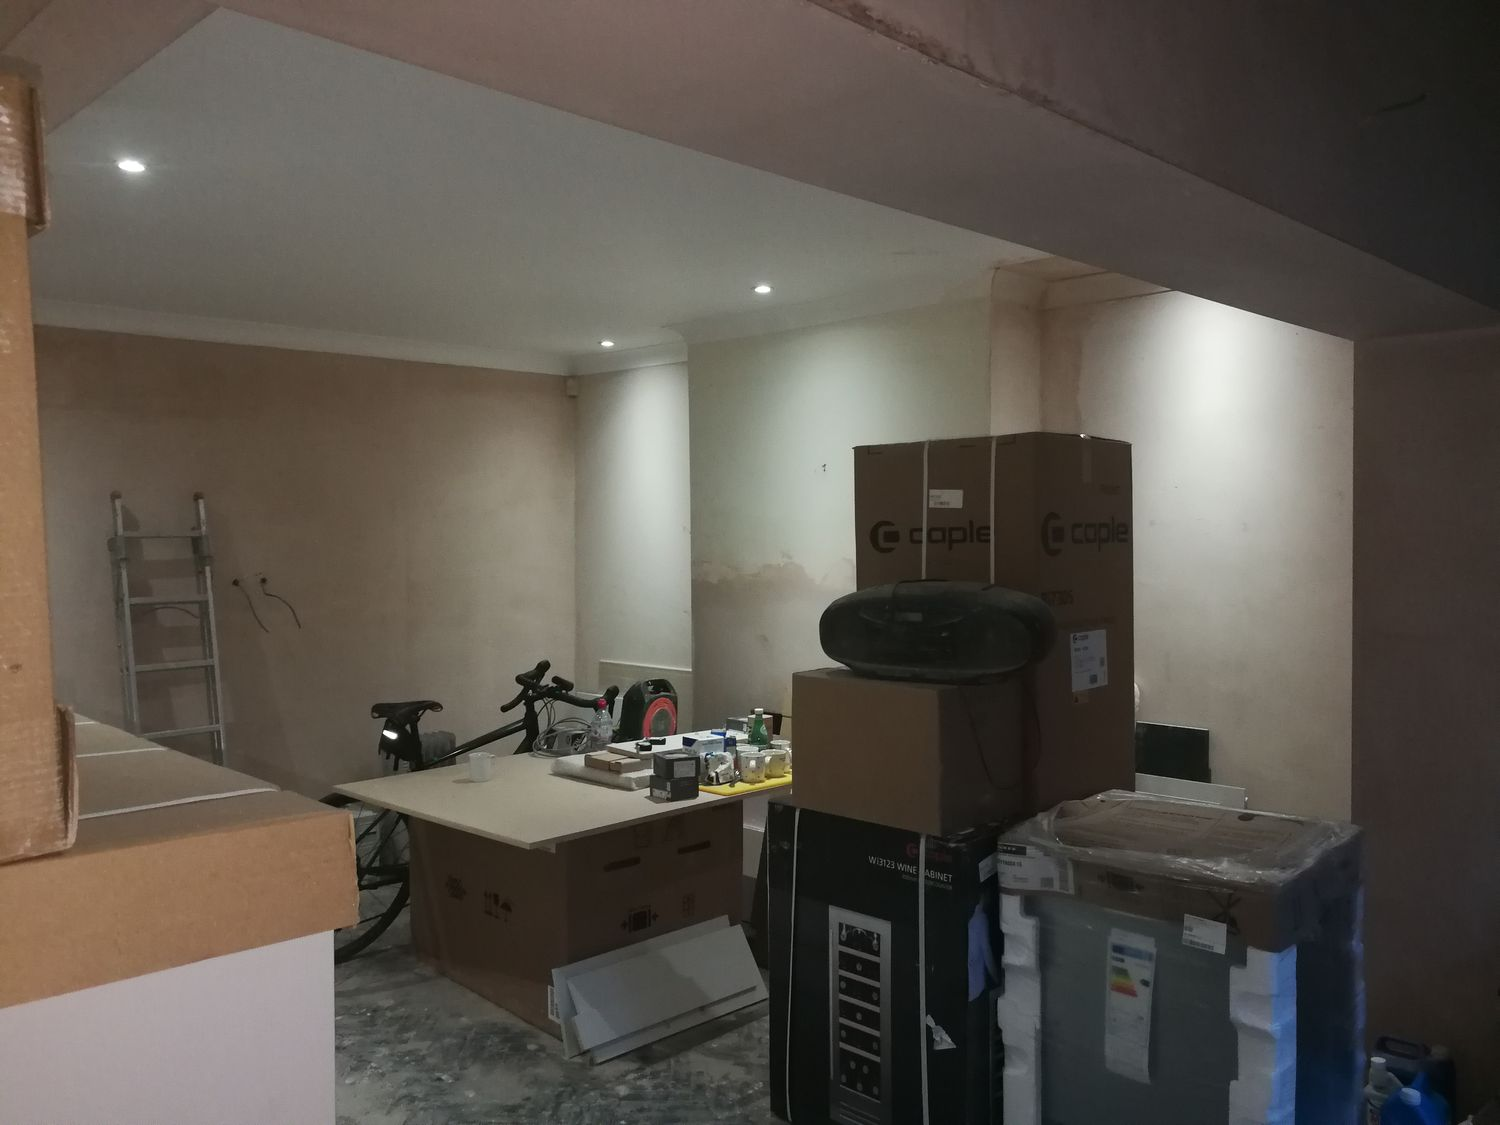 A photo of the same angle before the shelving was built, with bare plaster walls and some of the kitchen units stacked up.